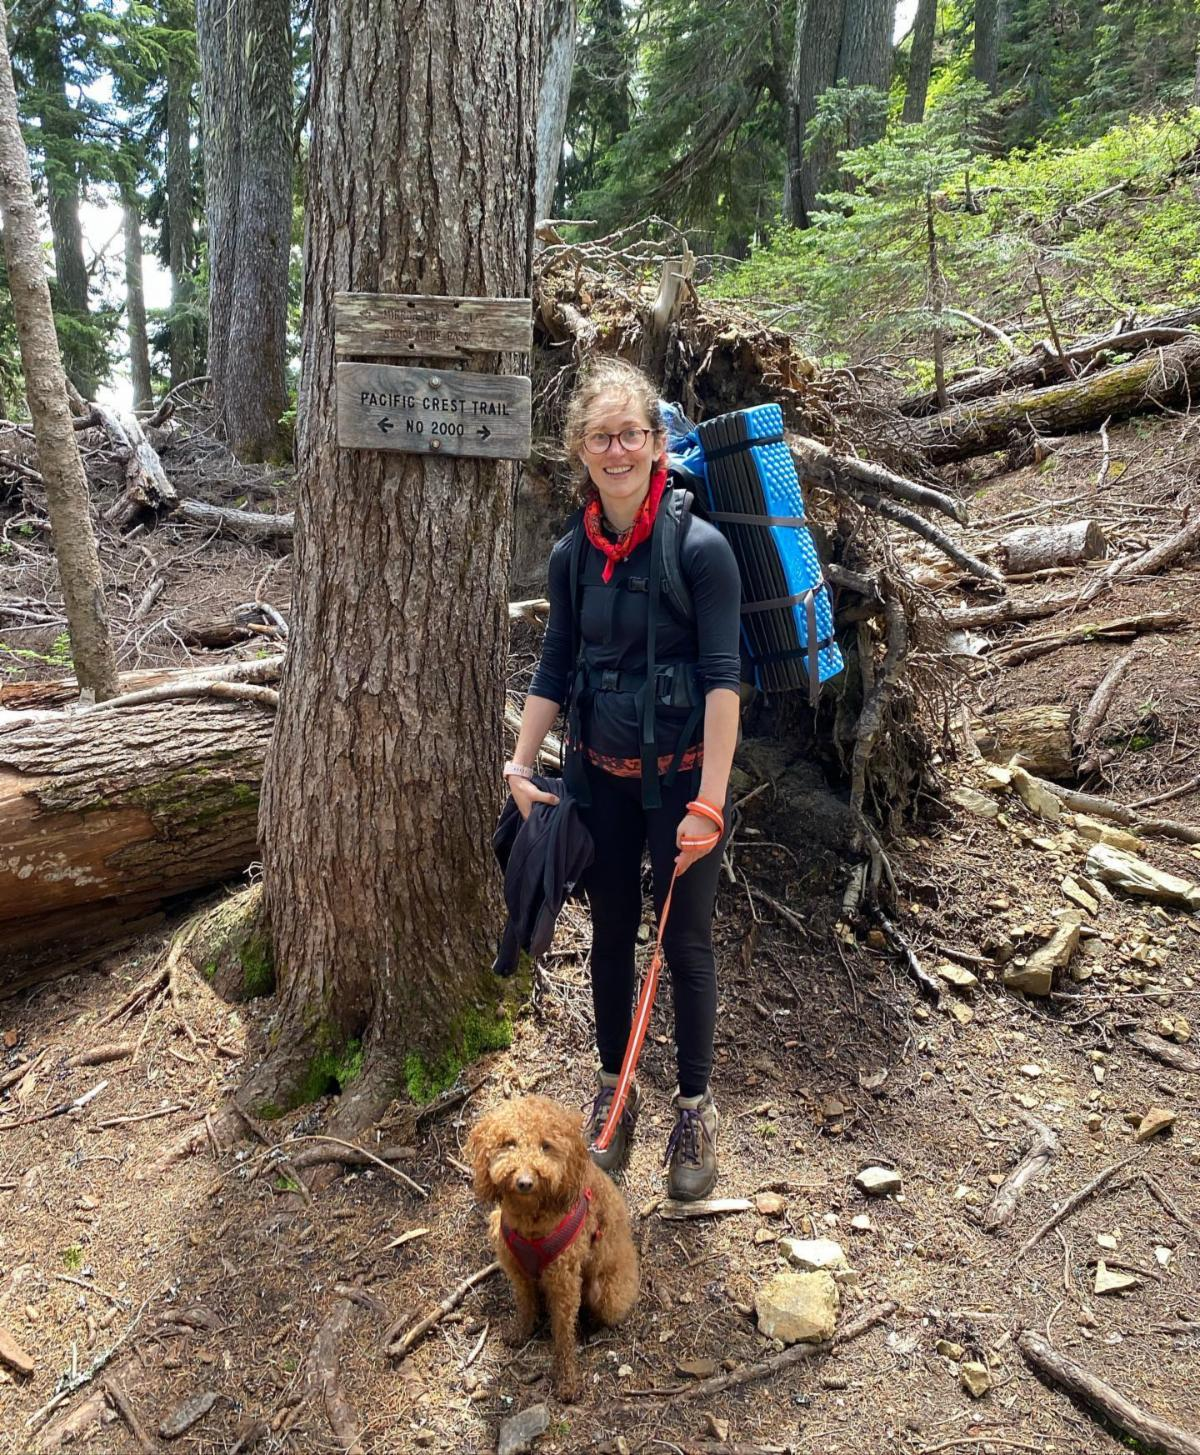 """Woman wearing glasses and backpacking gear stands in front of a sign that reads """"Pacific Crest Trail No 2000"""". She holds a leash with a medium brown dog."""